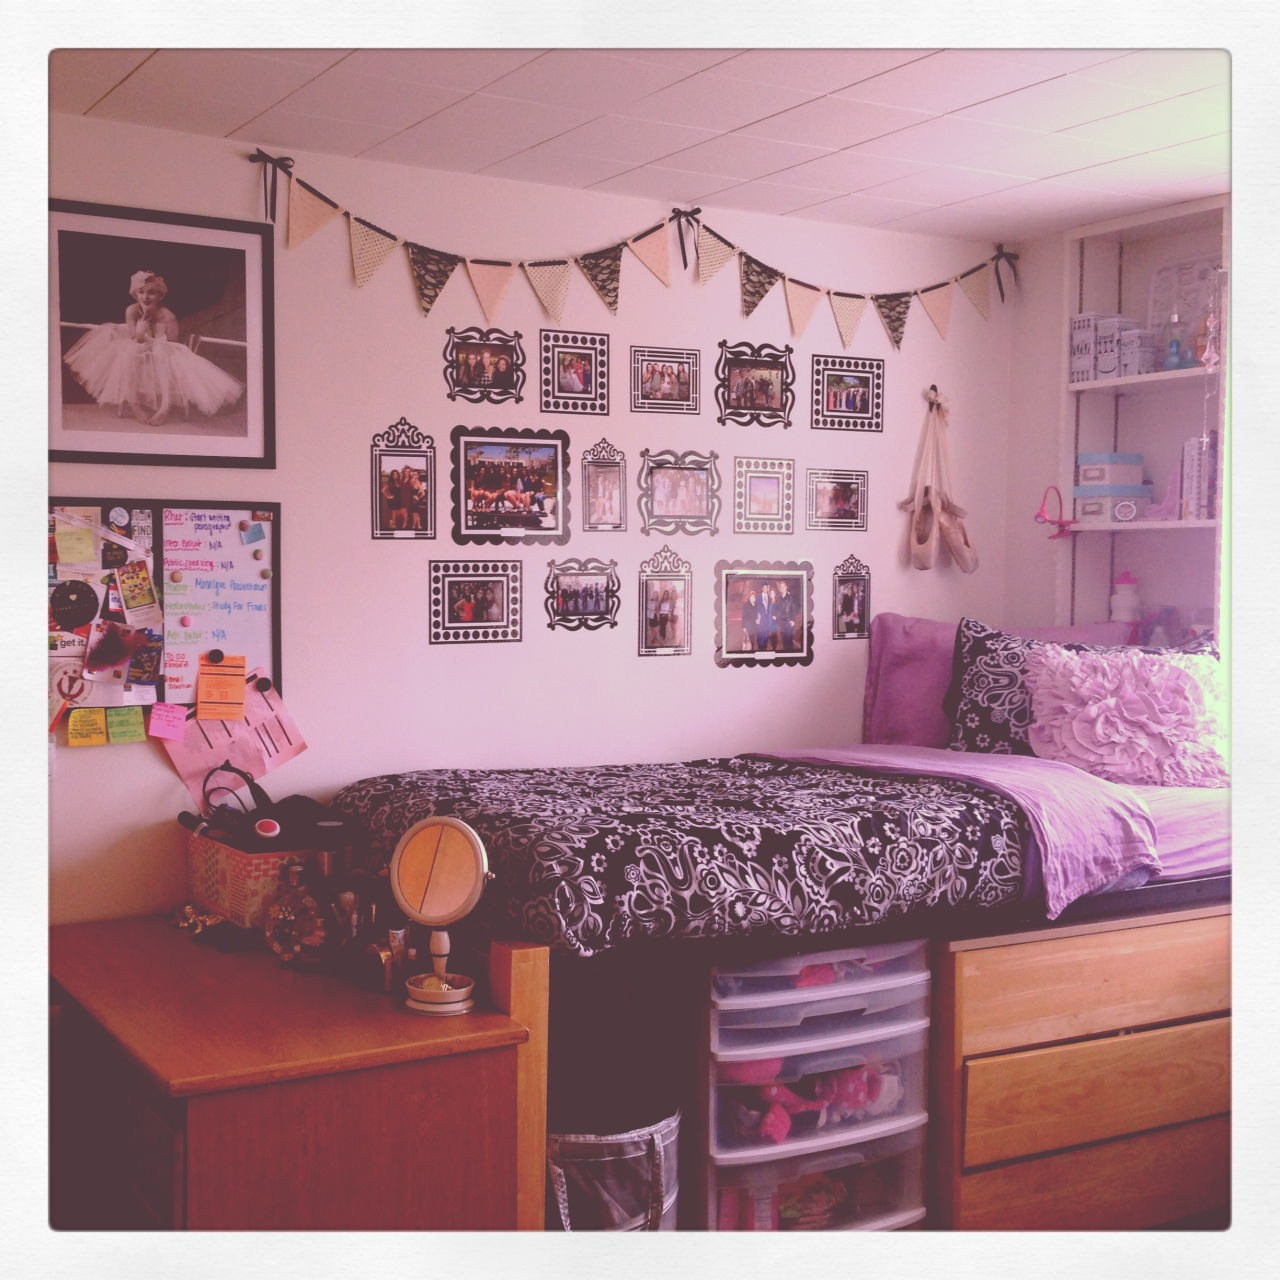 My Dorm Room